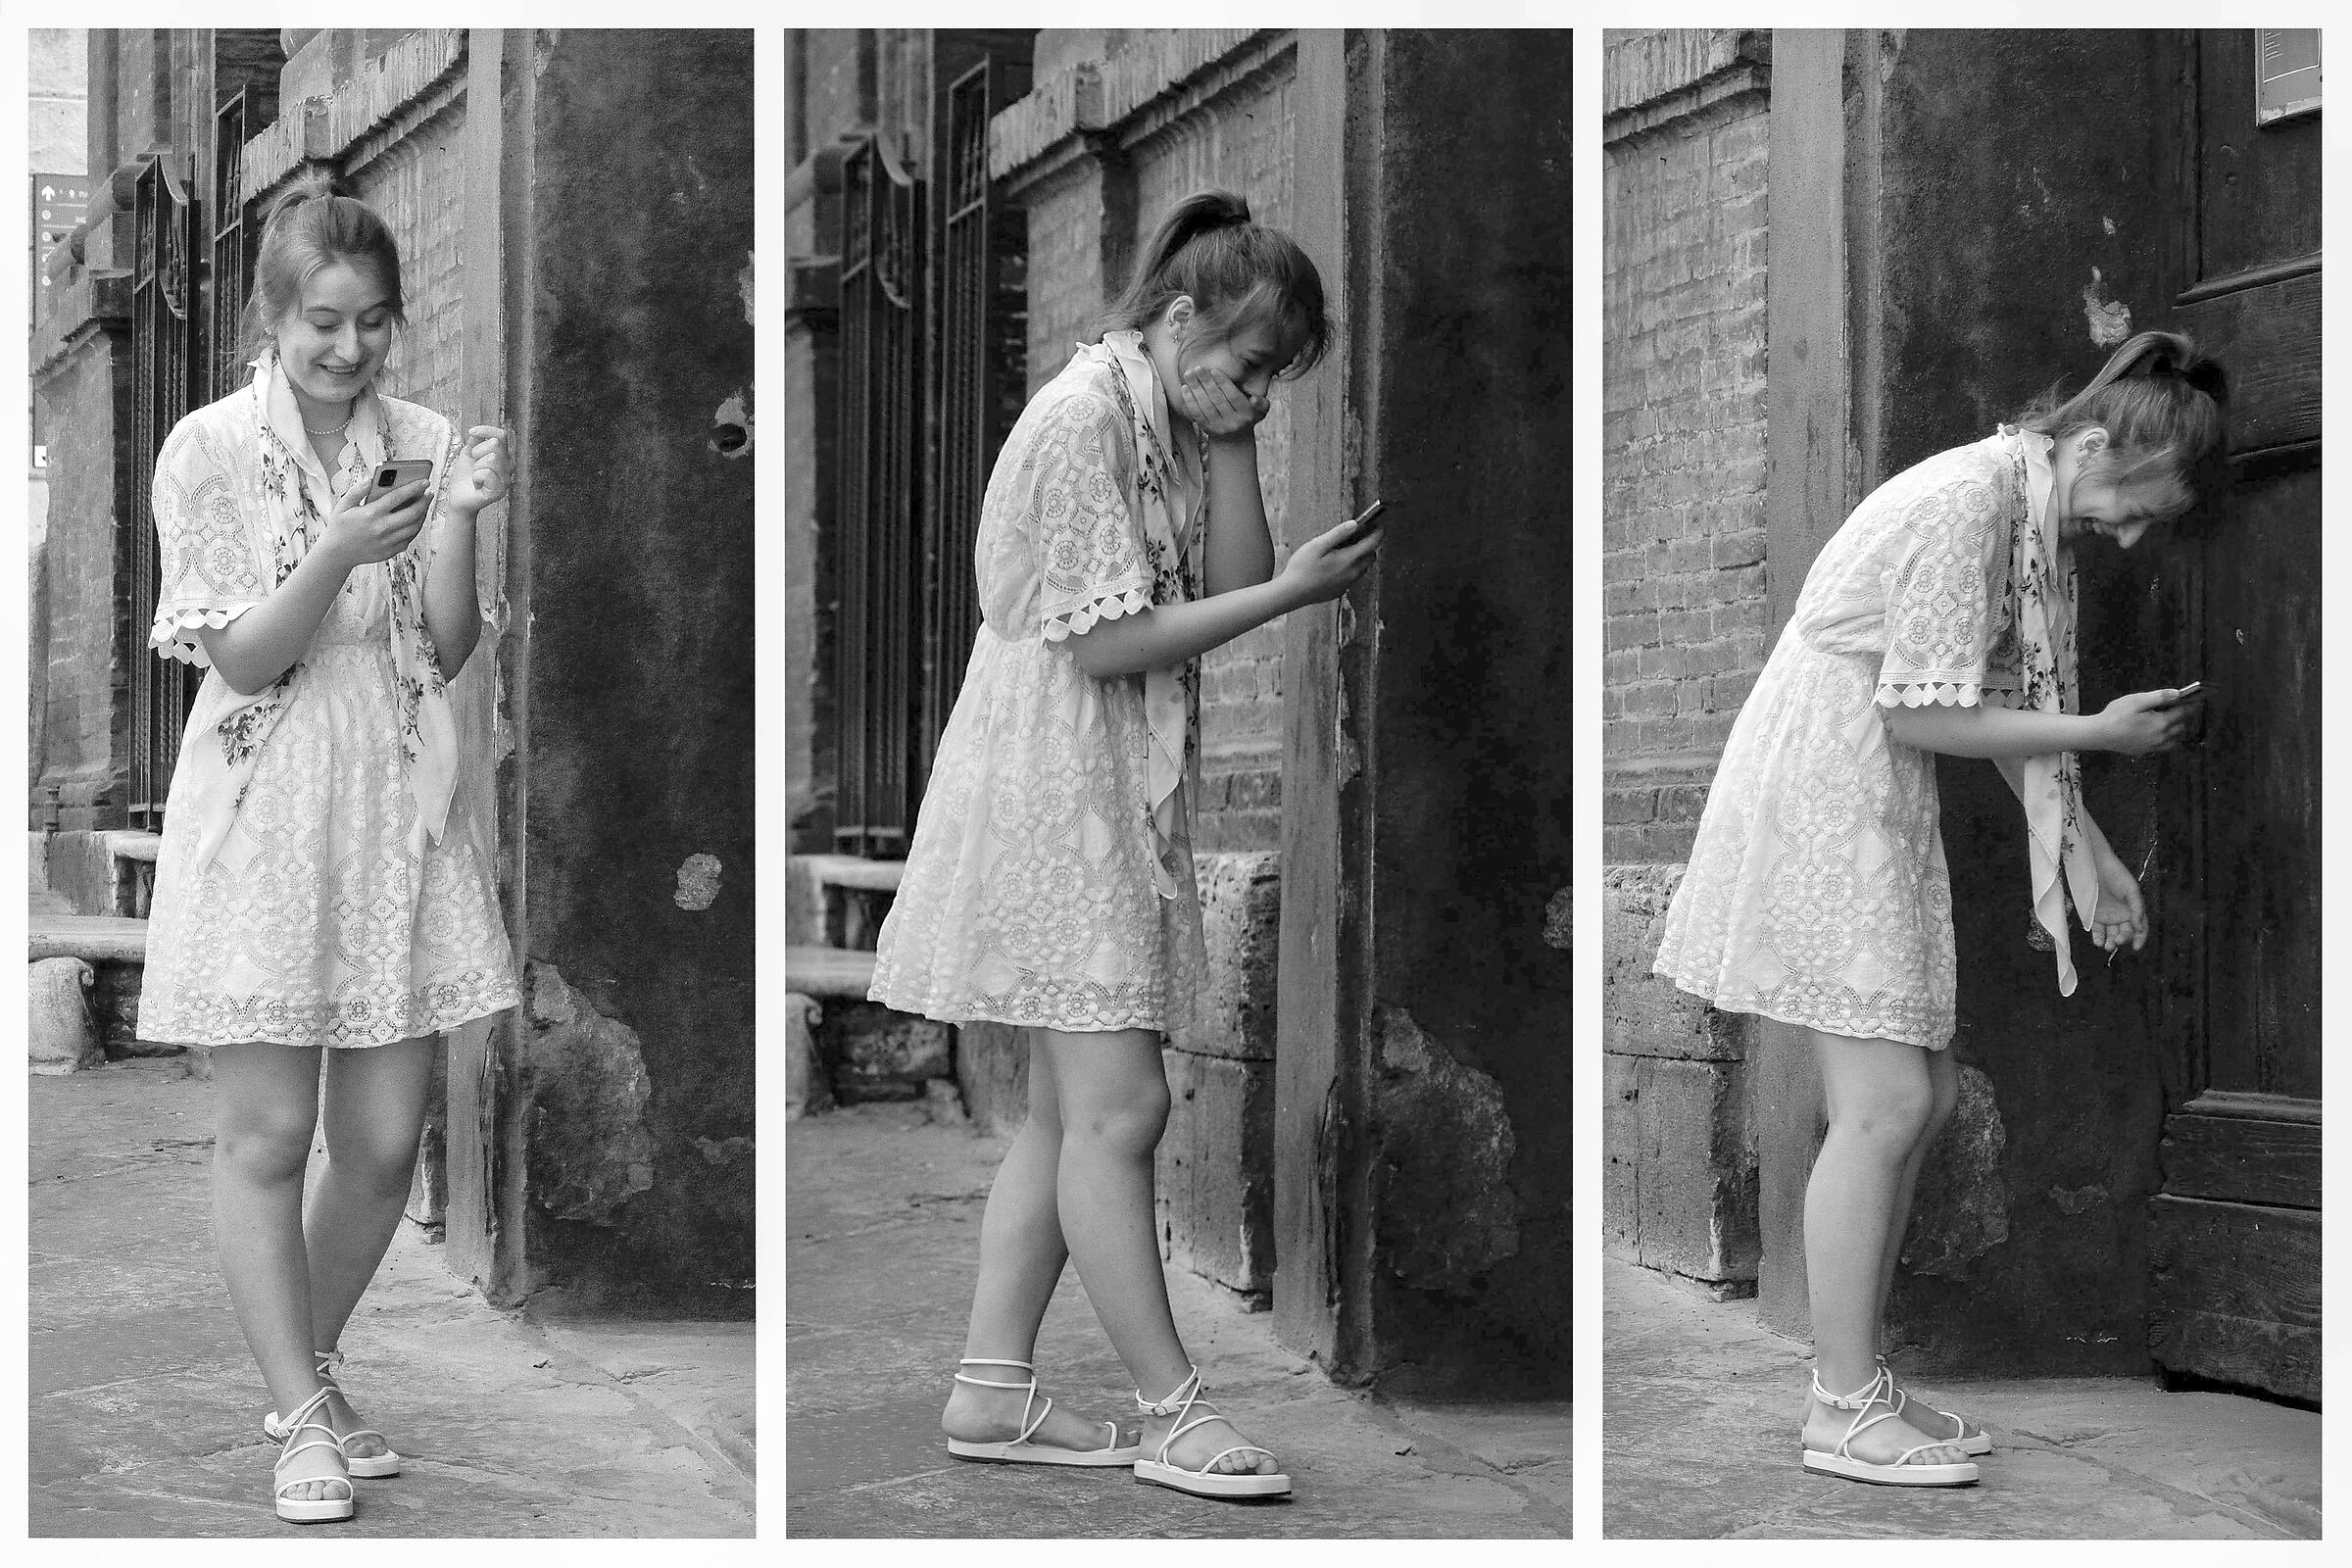 Street photo - Sequence...